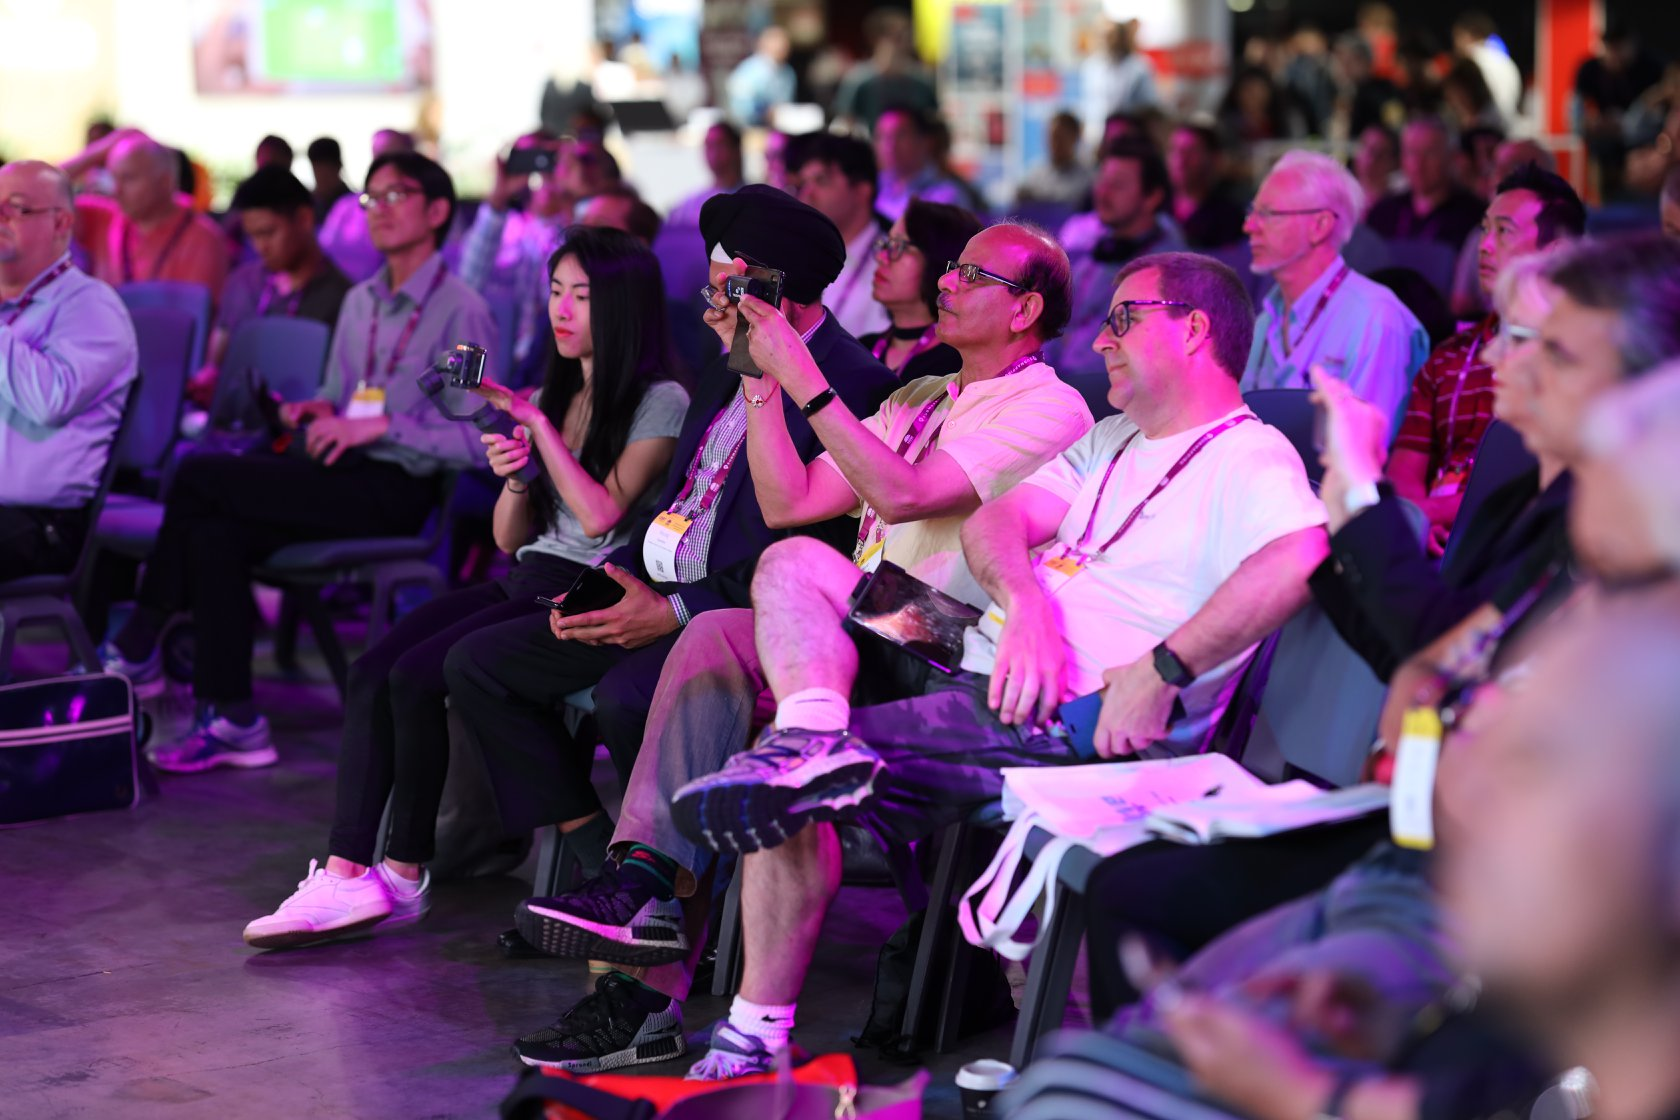 delegates in session at cebit conference